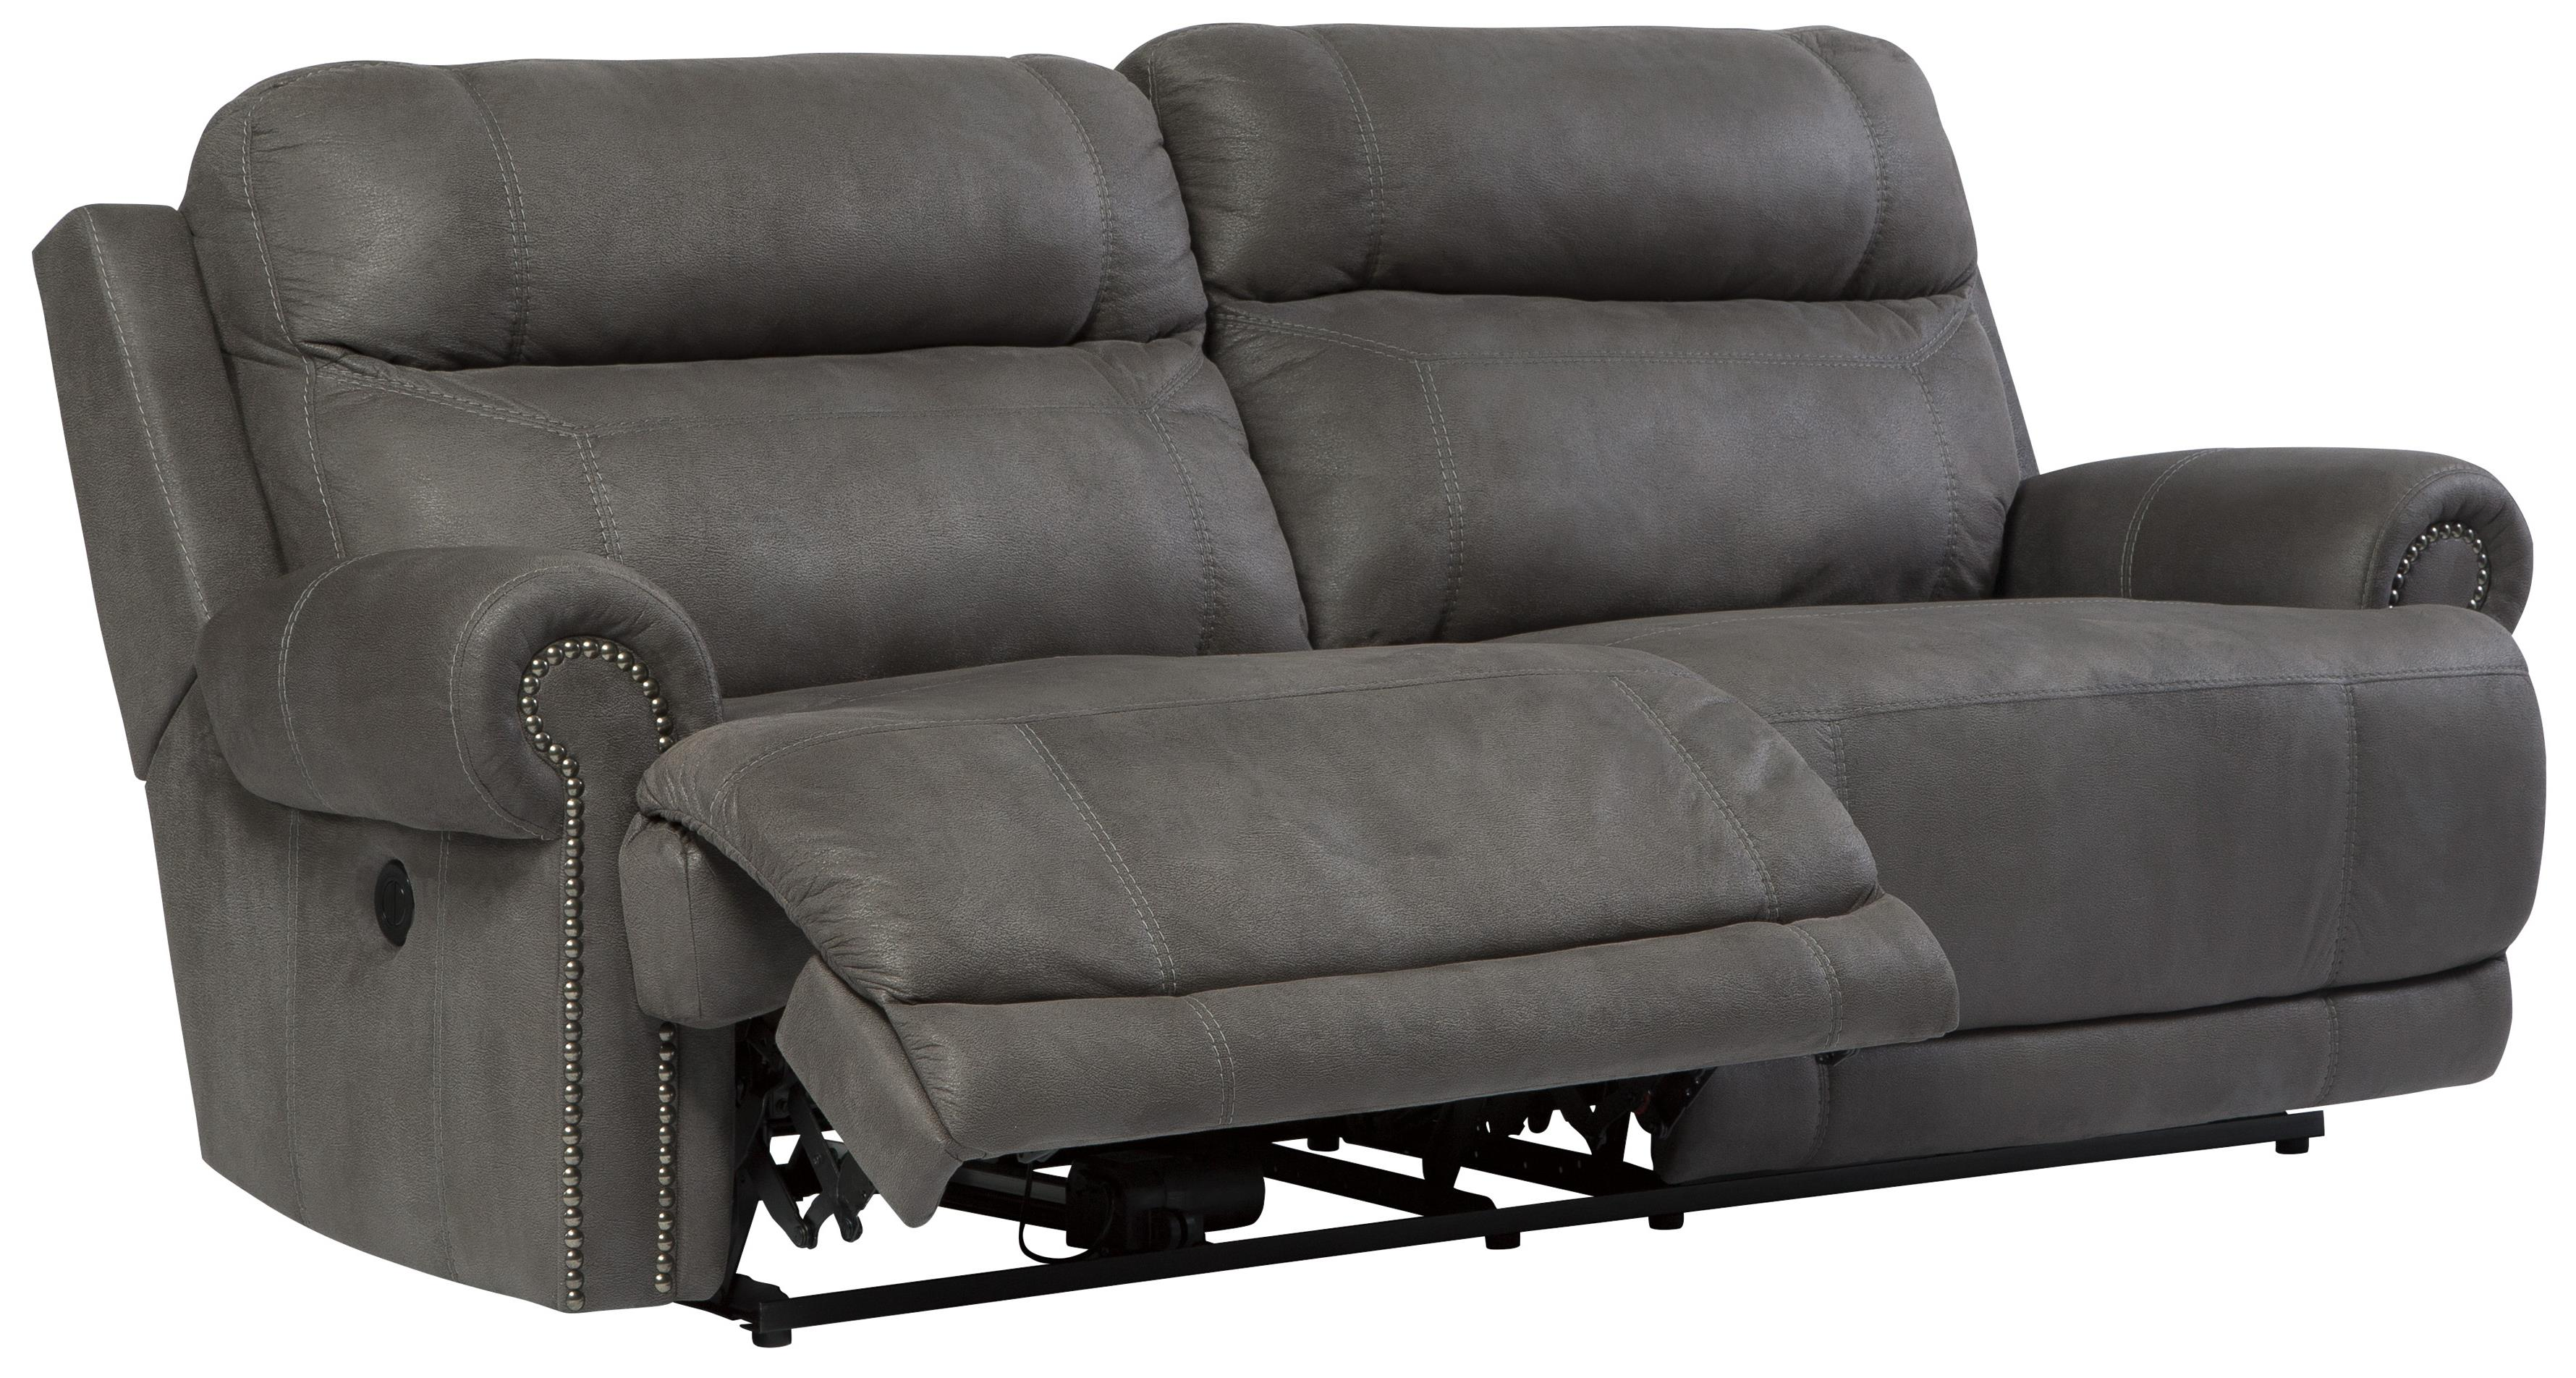 modena 2 seater reclining leather sofa cassina seat faux power with rolled arms